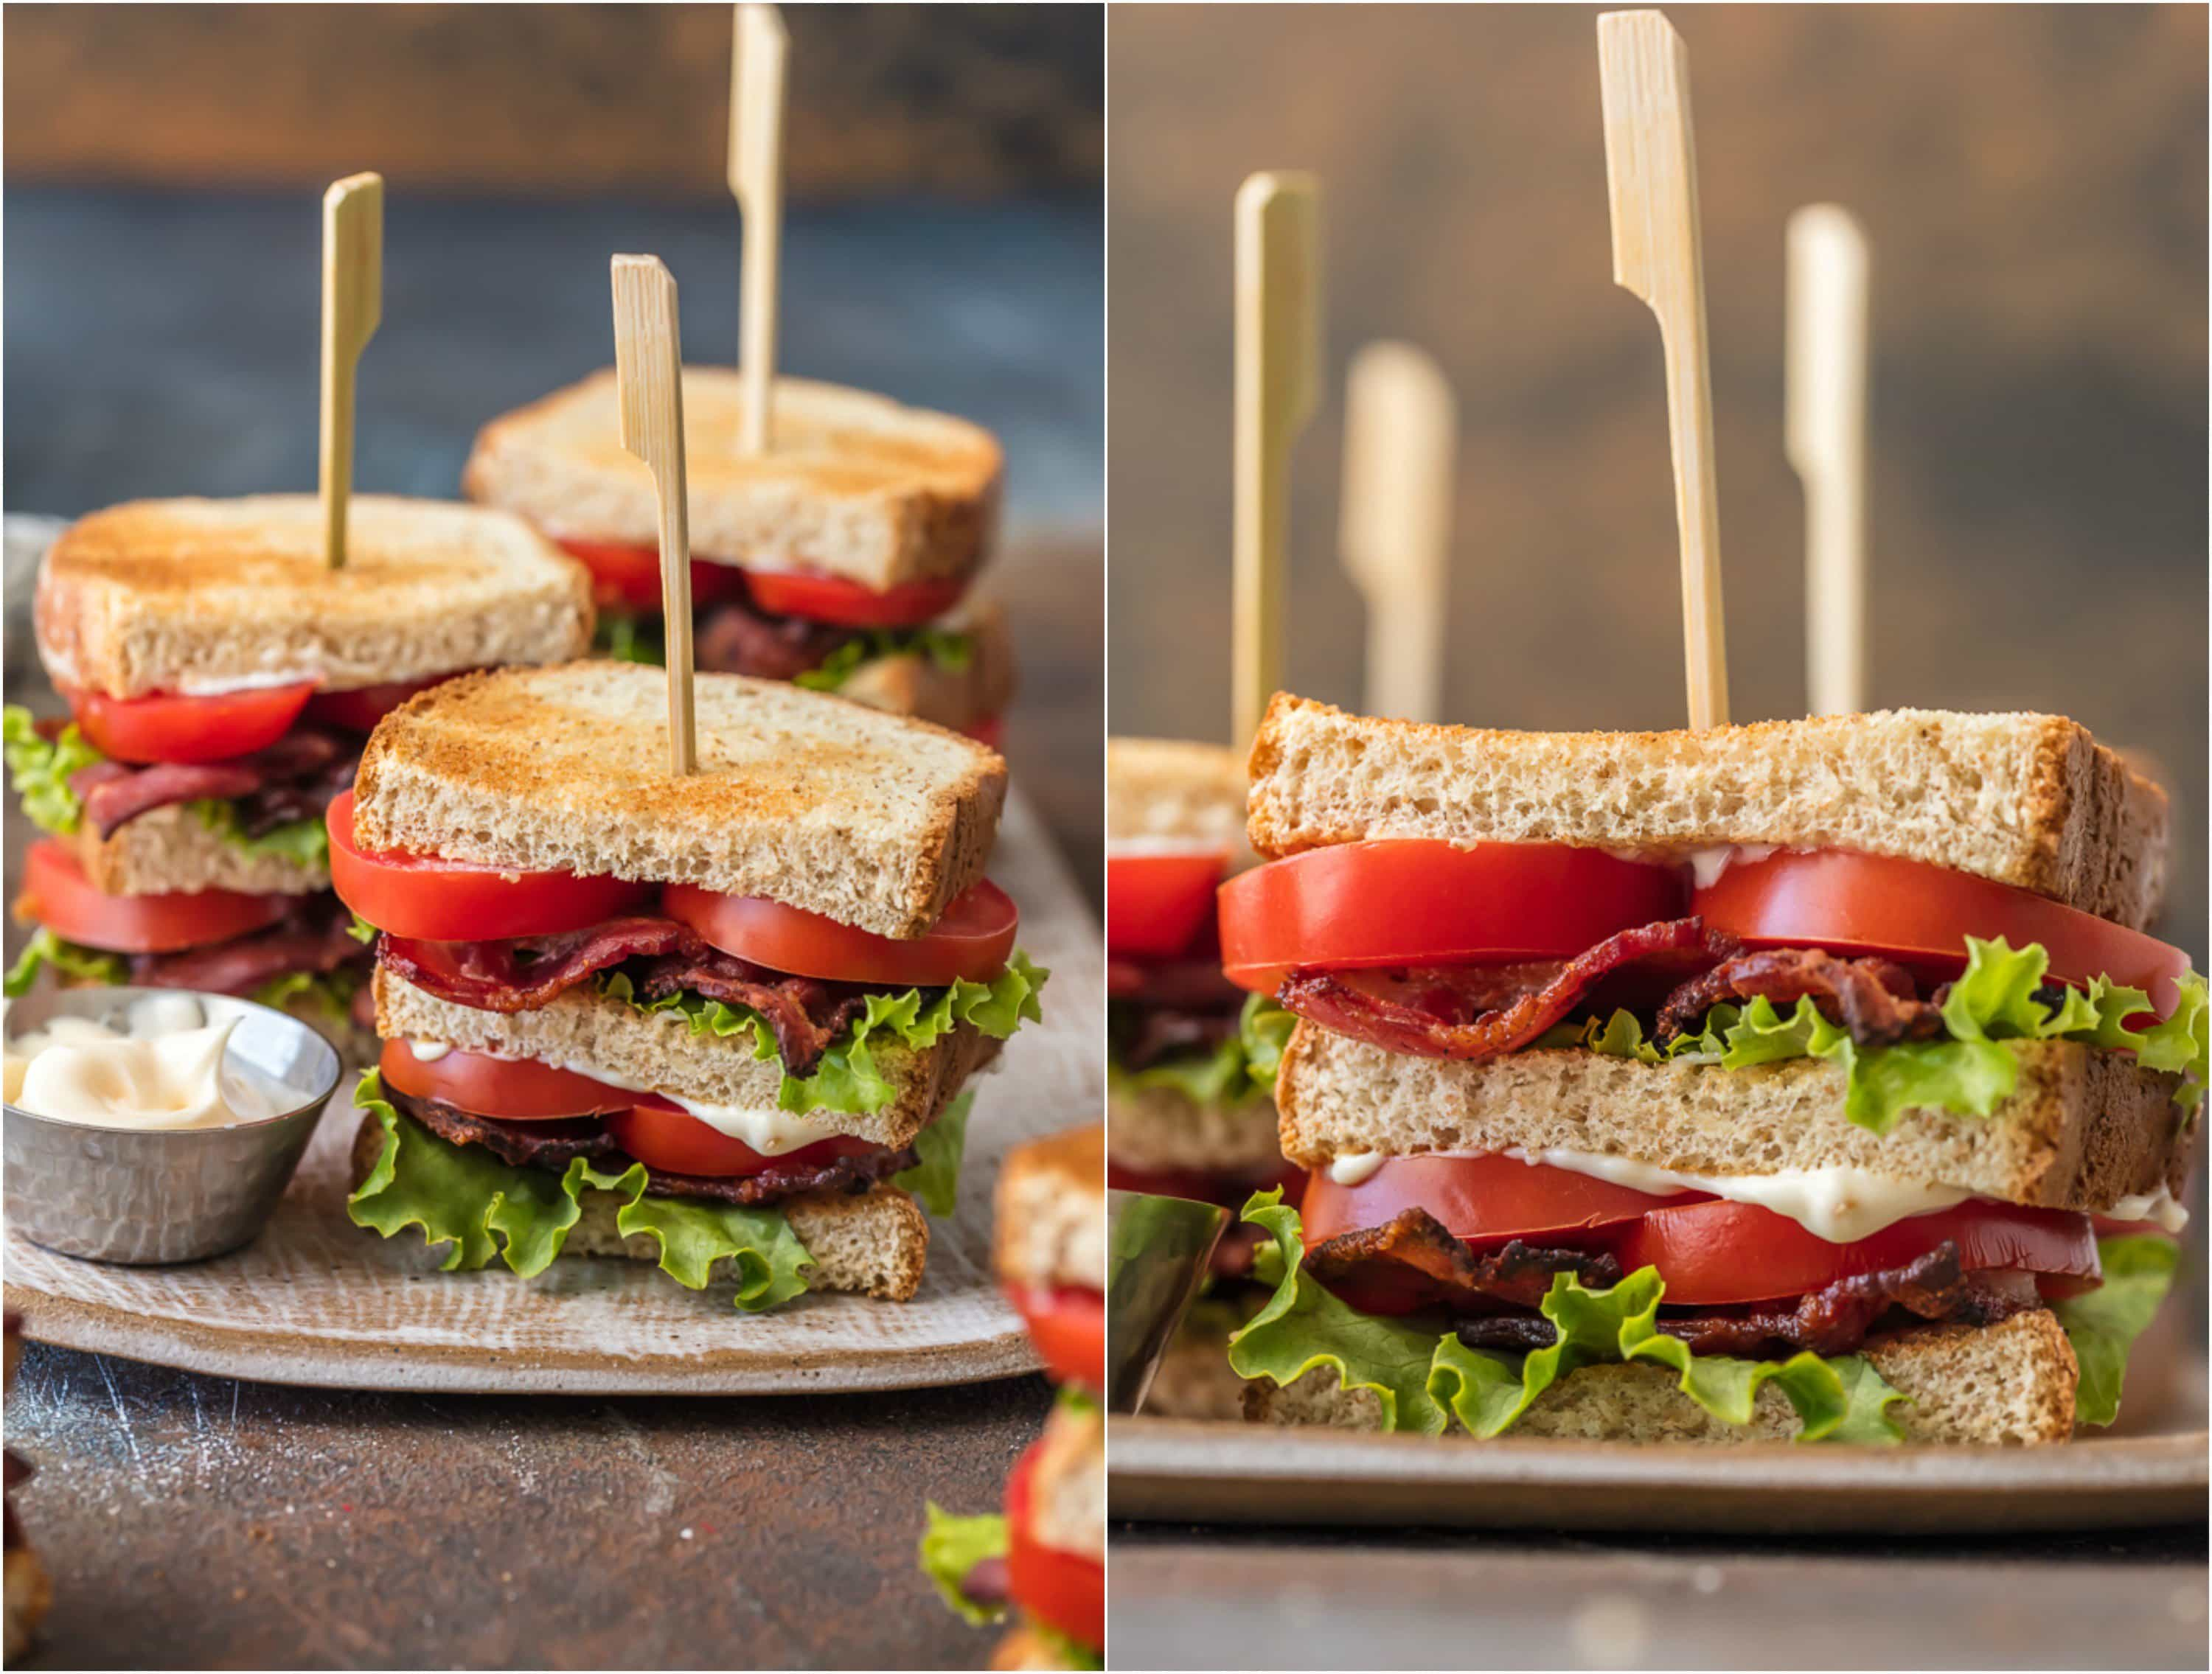 blt sandwiches on a plate with mayo